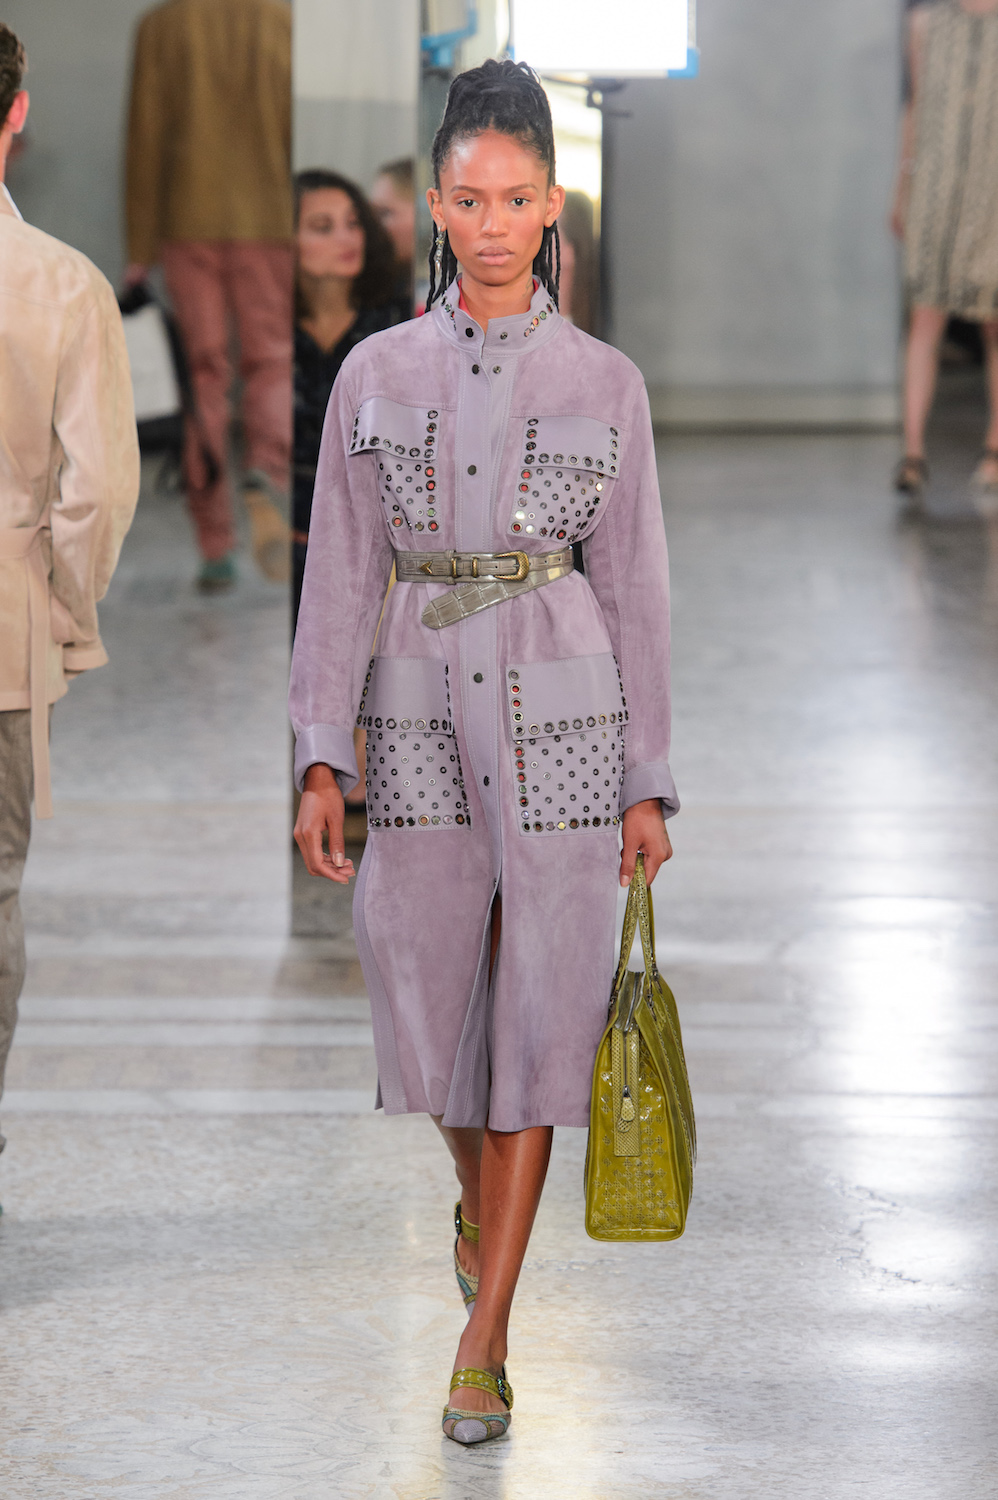 Bottega Veneta Embraces the Pastel Rainbow for Spring/Summer 2018